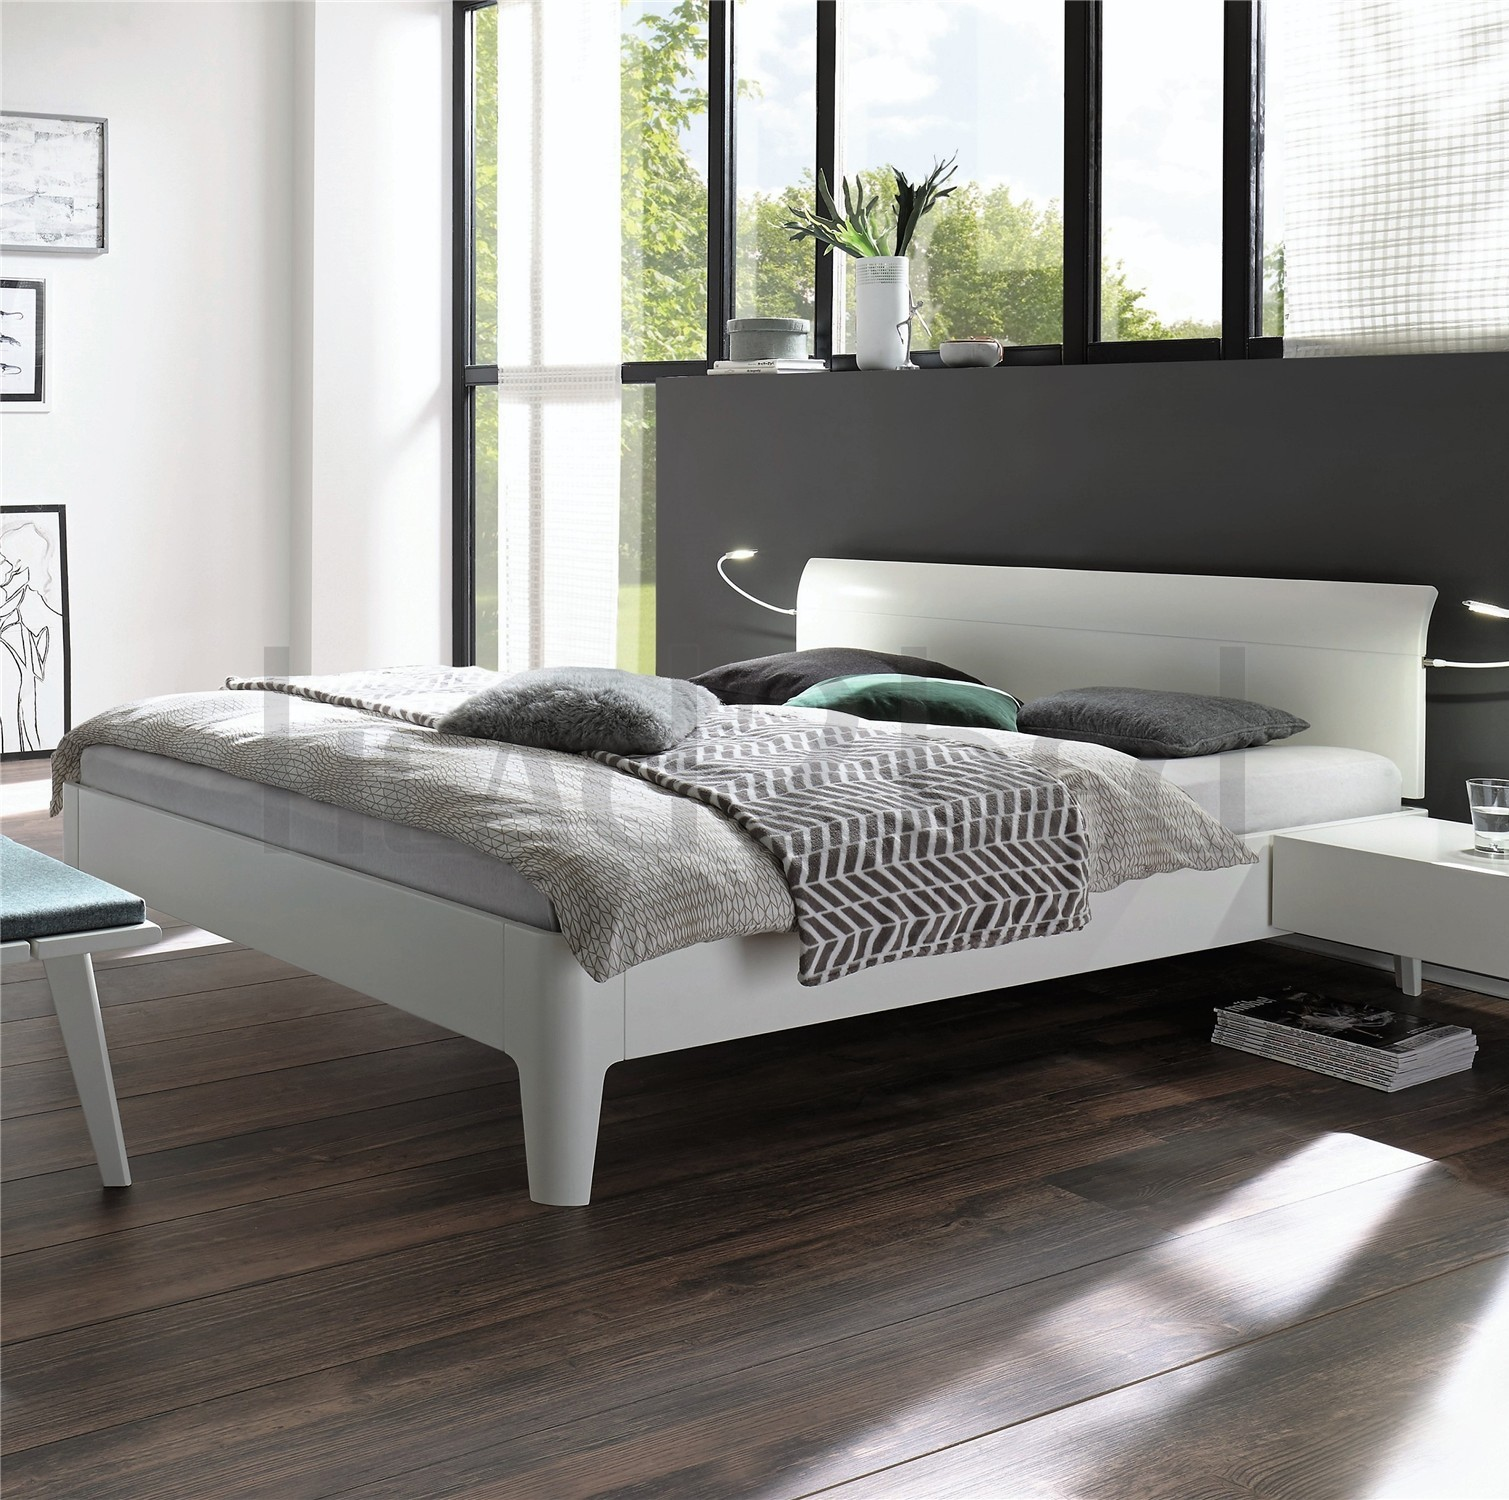 Fabulous Contemporary Designer Beds » Hasena Xylo Vola Solid Walnut or  WA63